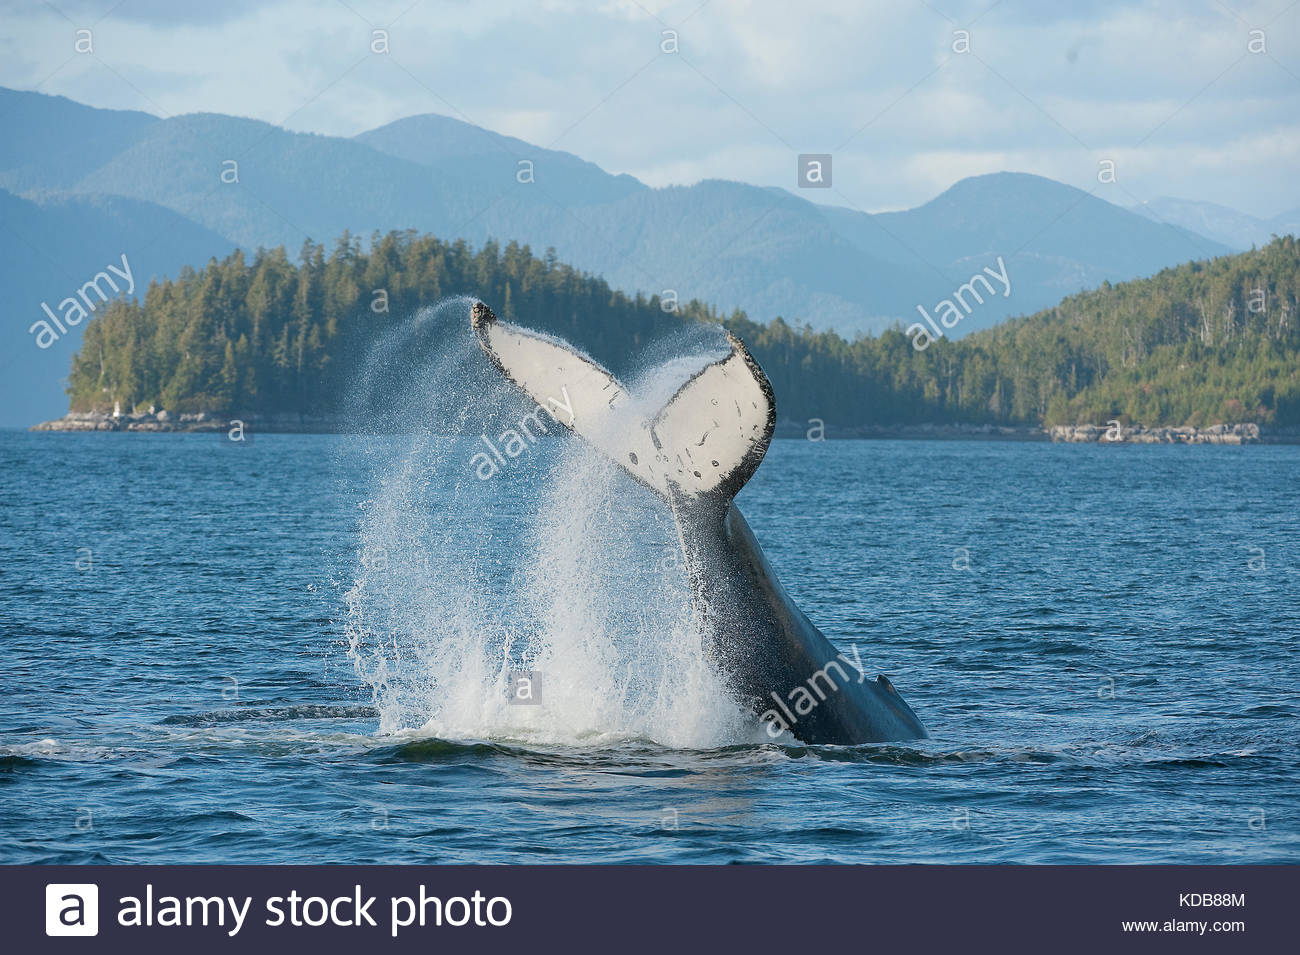 A humpback whale, Megaptera novaeangliae, slapping its tail in British Columbia's inside passage. - Stock Image